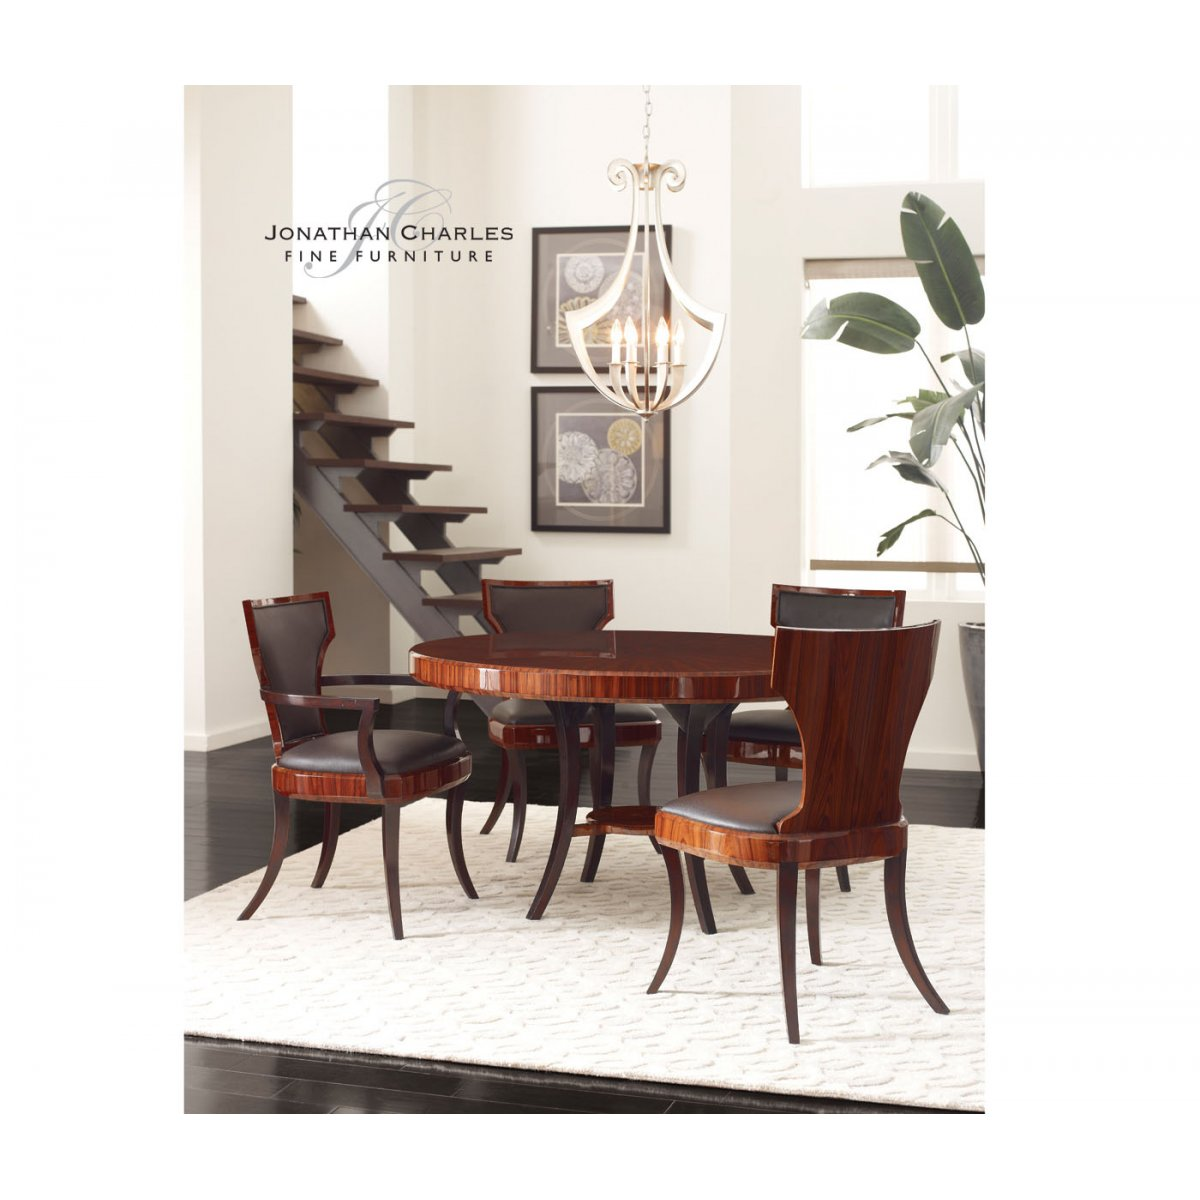 6 seater round dining table swanky interiors for Dining room tables 6 seater